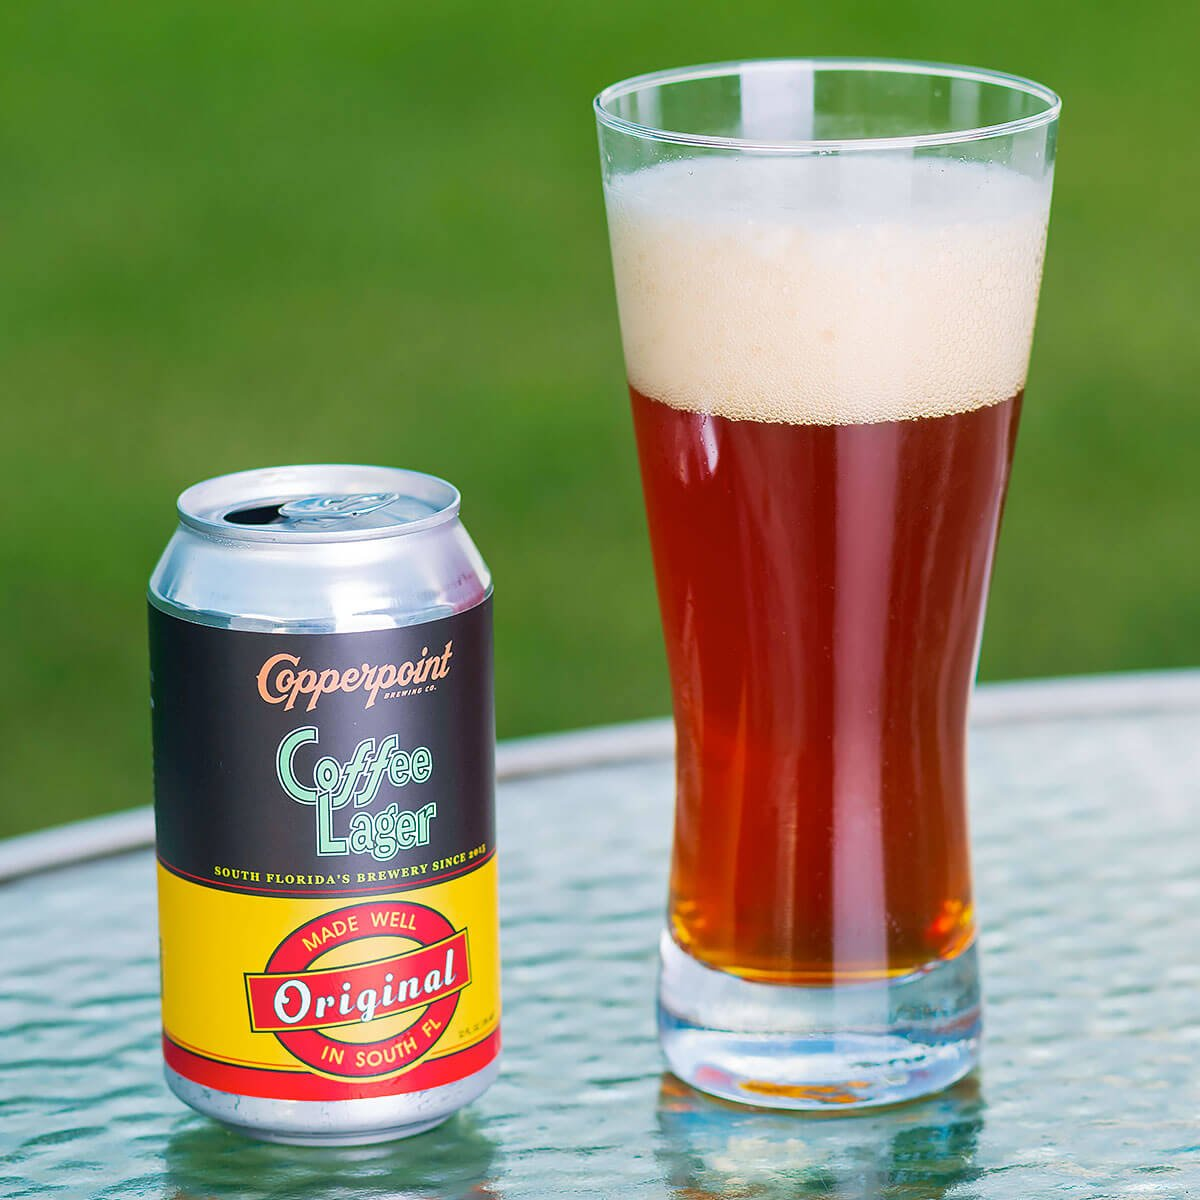 Coffee Lager is an American Amber Lager by Copperpoint Brewing Company that blends coffee flavor with baked bread and caramel.